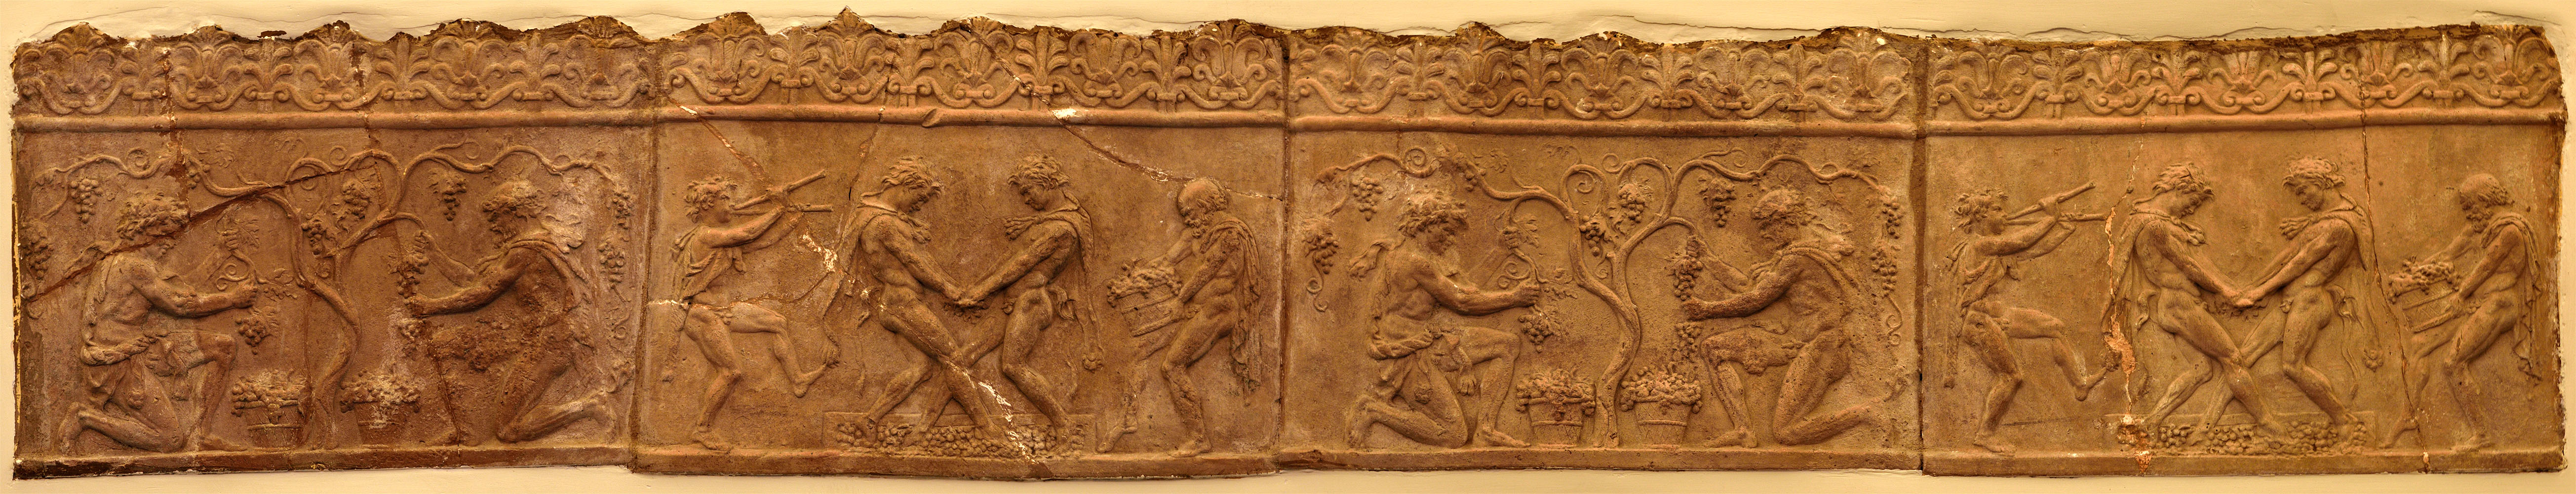 Four Campana plaques with vintage scenes. Terracotta. Late Augustan age. Inv. No. 11. Rome, Galleria Colonna